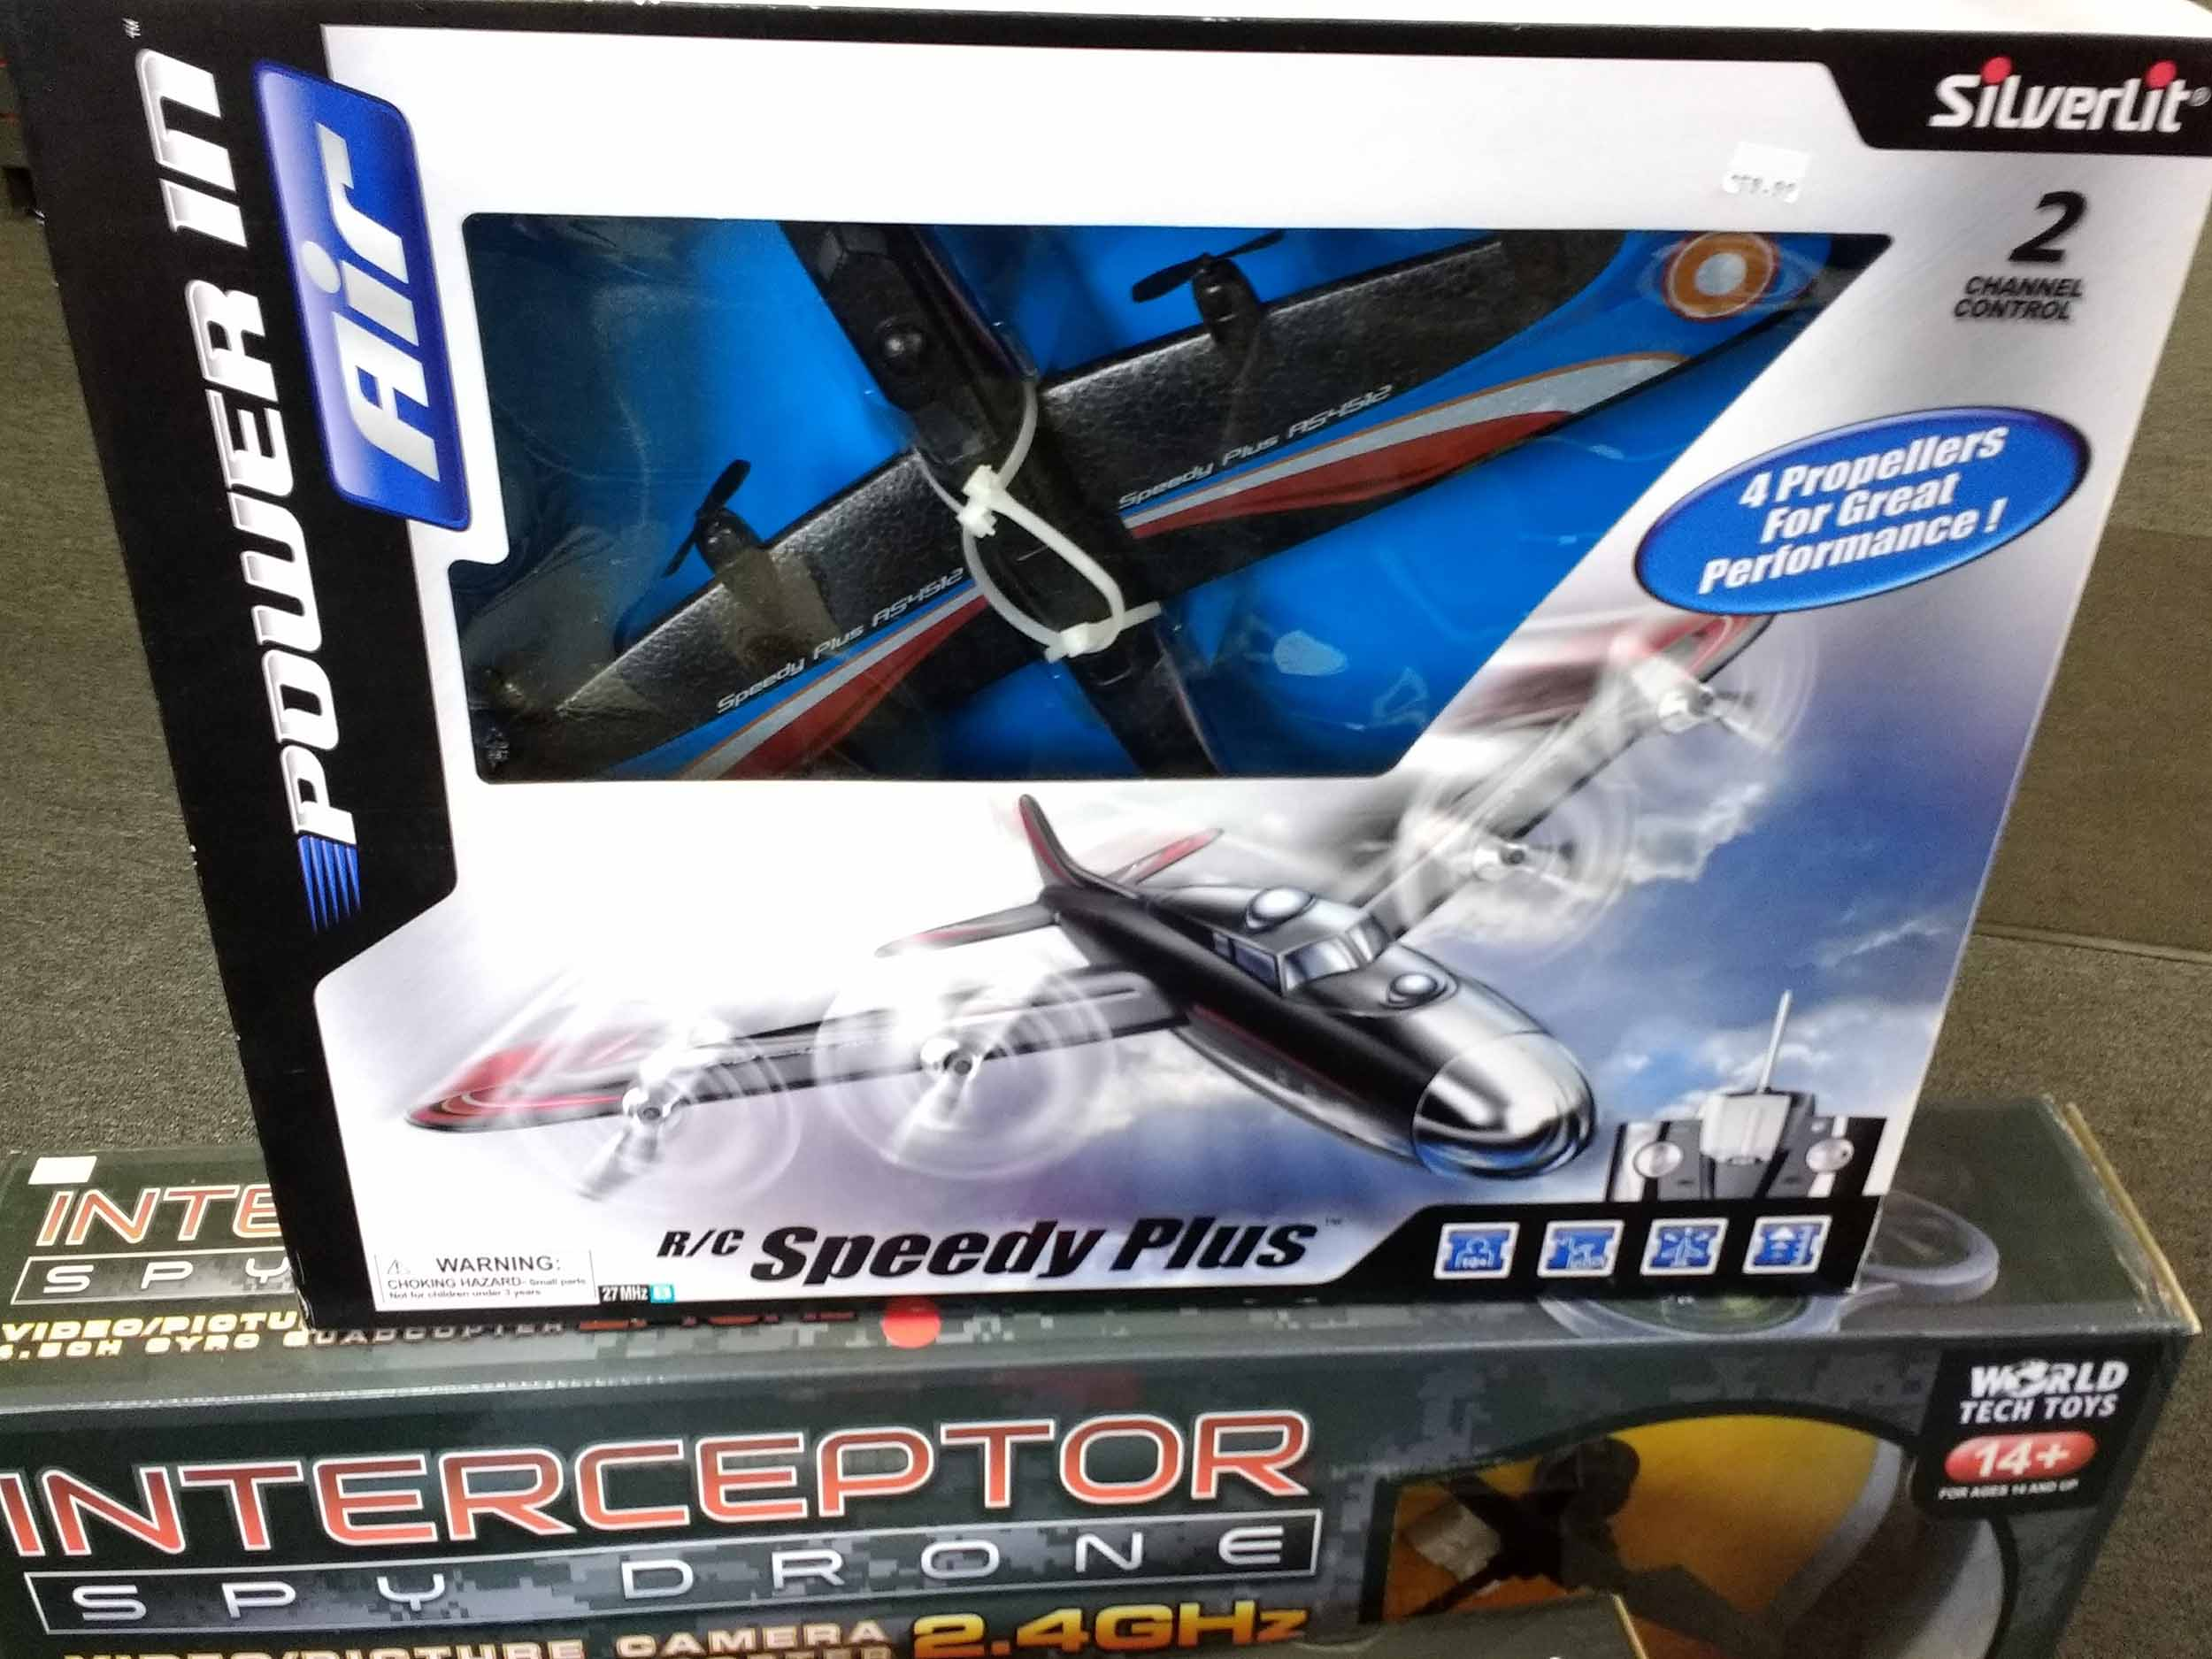 Radio control airplane for great outdoor fun.